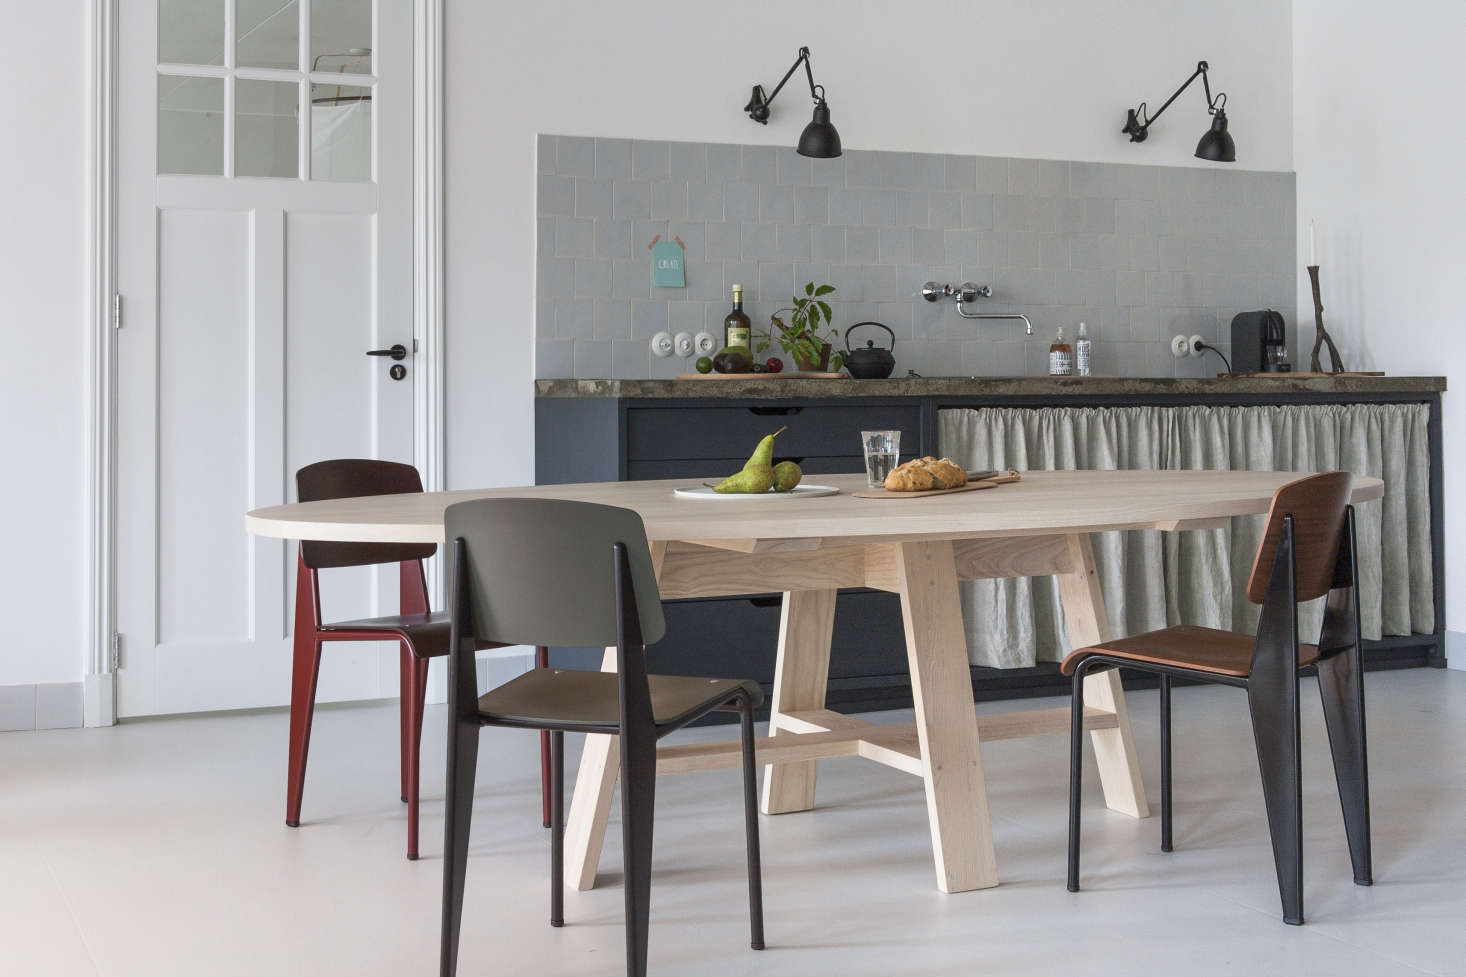 Thenew open-plan setup revolves arounda kitchen witha tight palette of white, charcoal, and pale gray offset by the pale oak of Starkenburg&#8